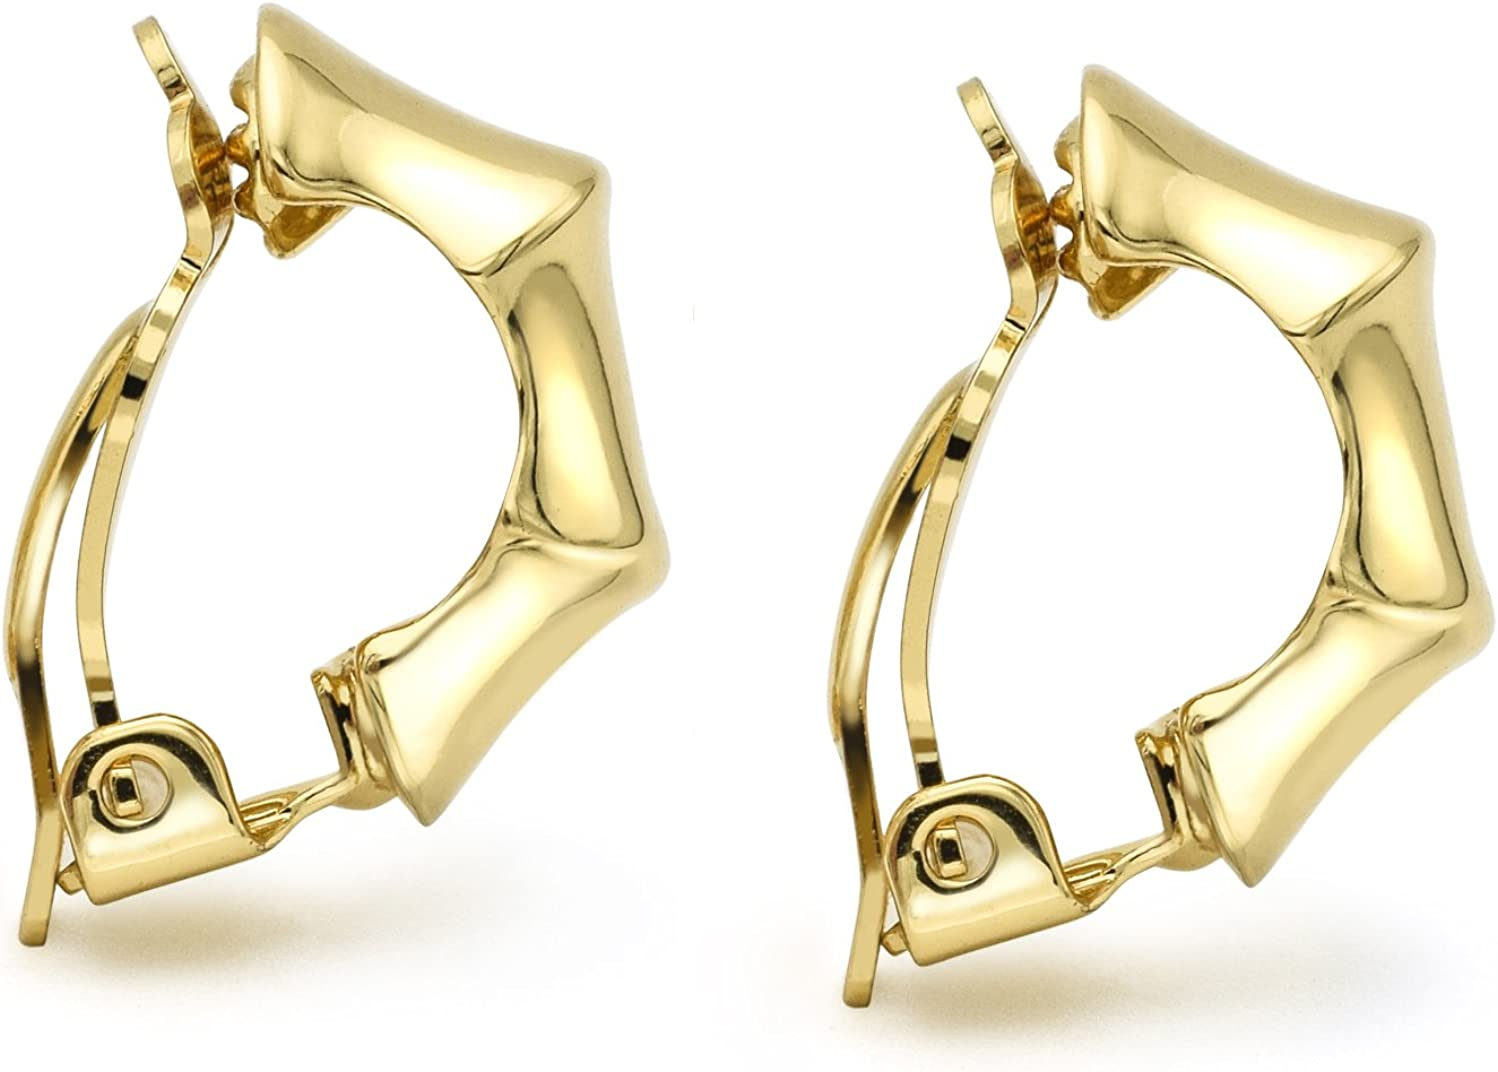 Bamboo Clip On Earrings Gold Plated Polished Half-Hoop Women Fashion